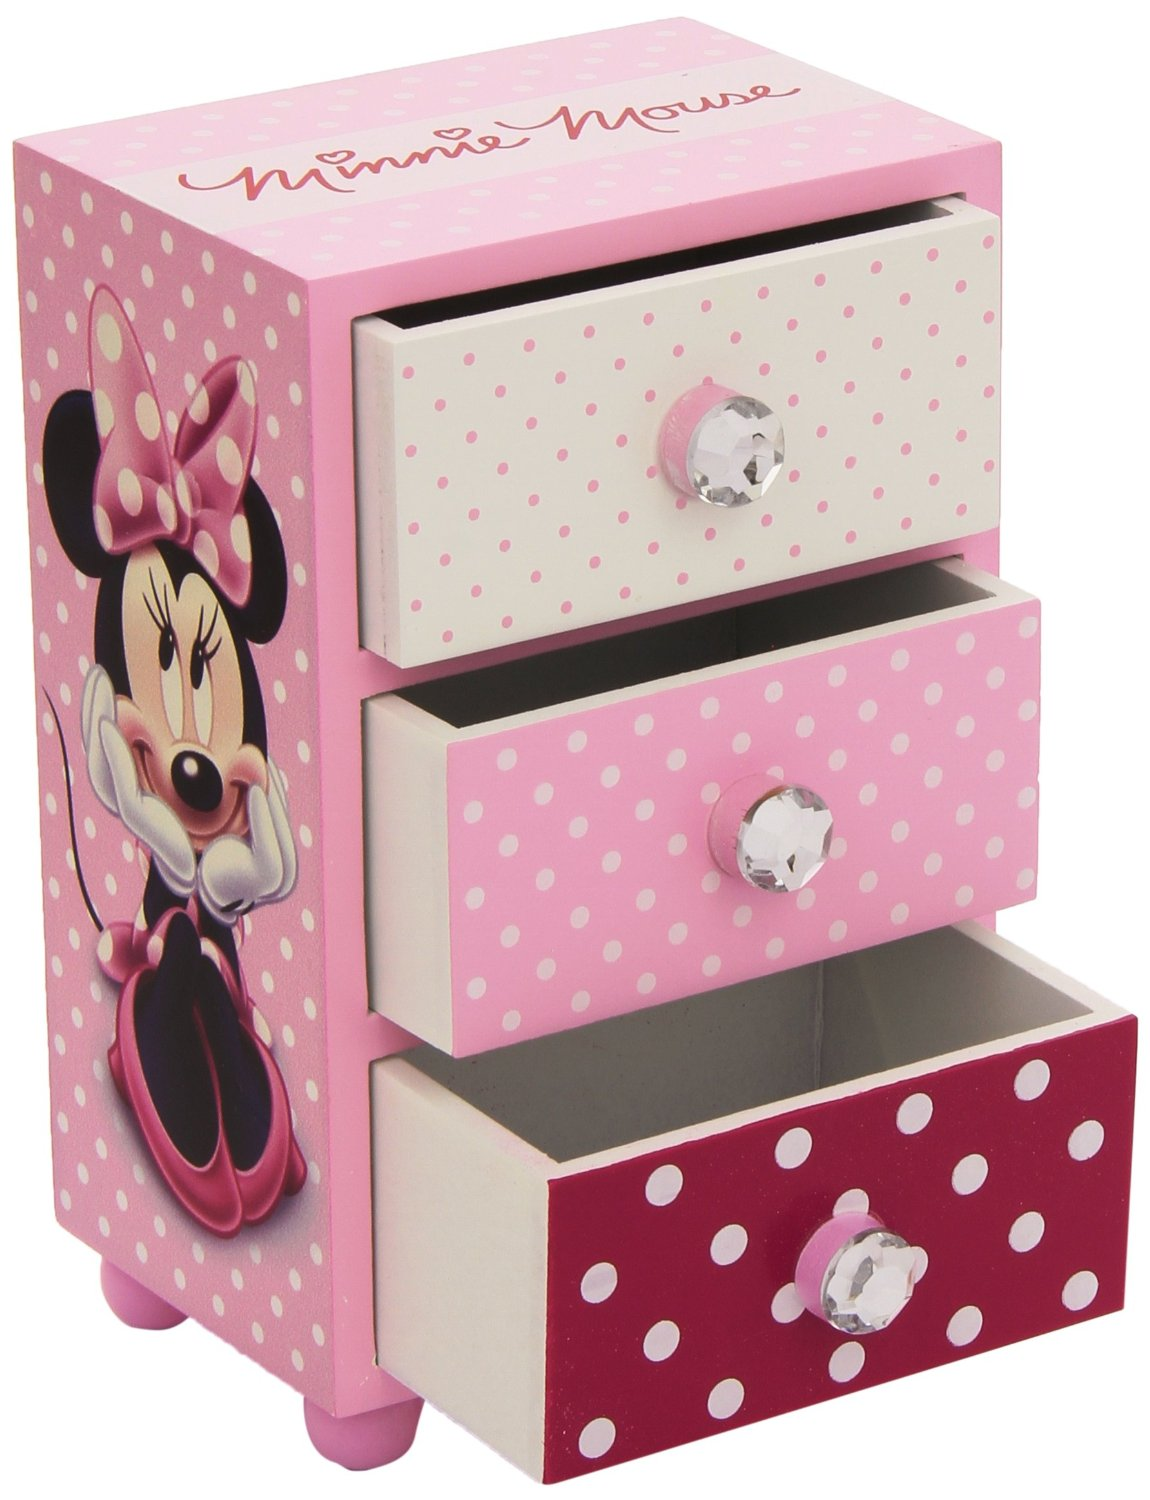 Minnie Mouse Bedroom 3 Drawer Storage Kids Wooden Box Pink